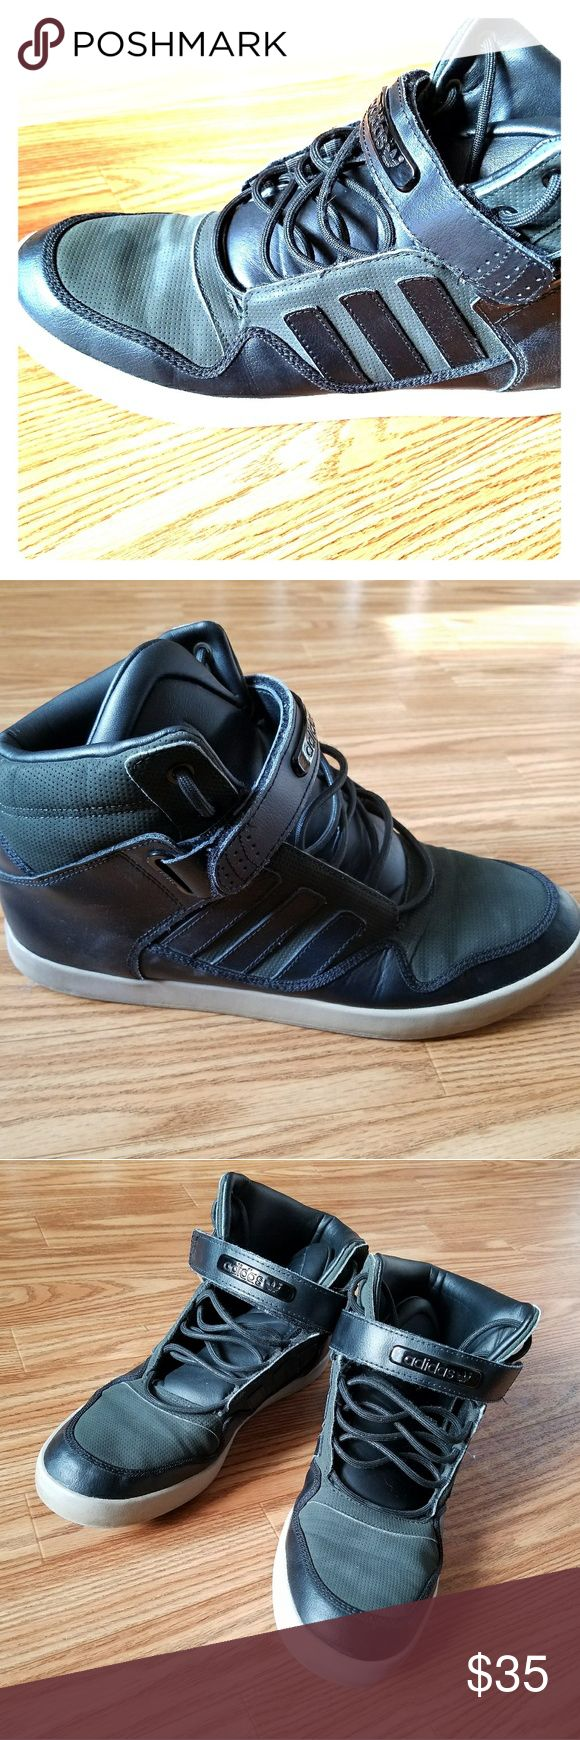 Adidas Evm High top Basketball Shoes for Men ✅Used/Excellent Condition ✅Adidas  ✅Satisfaction Guarenteed  🏁Fast Shipping🏁 adidas Shoes